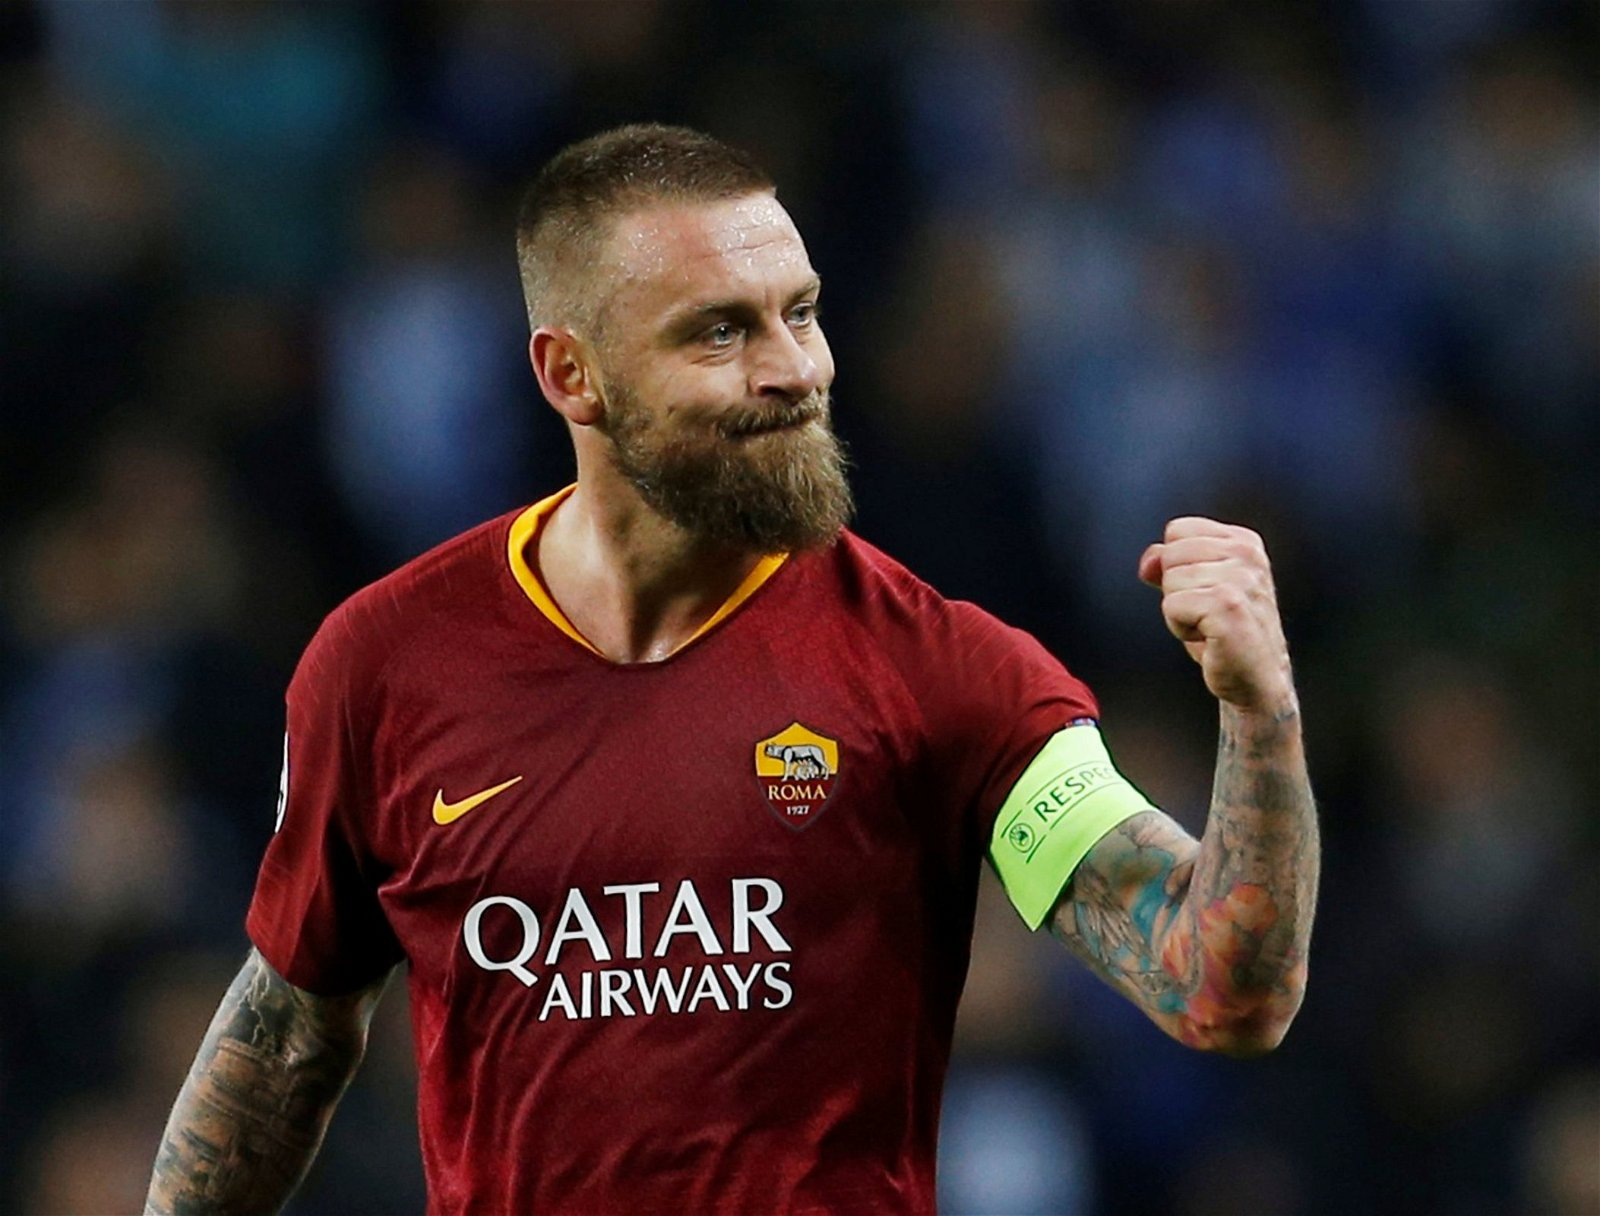 """De Rossi in action against Porto - """"He's got everything"""", """"Incredible natural physique"""": Gushing endorsements for Tottenham target"""